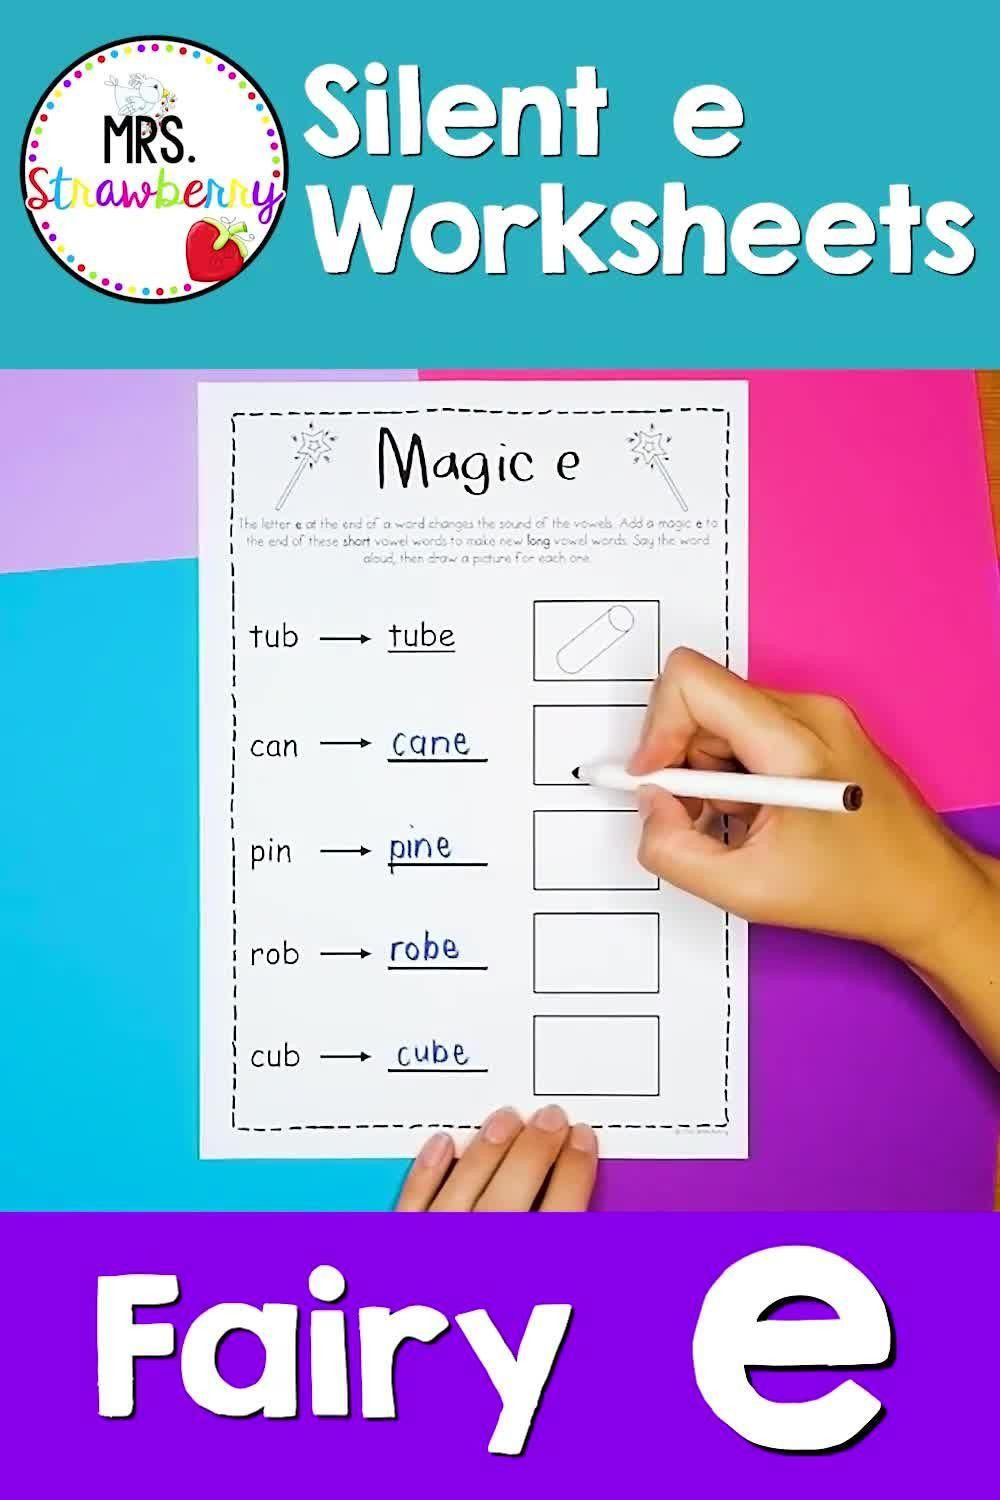 Magic E Silent E Worksheets For Primary Grades Video In 2021 Phonics Activities Teaching Phonics Words Containing Magic e rule worksheets